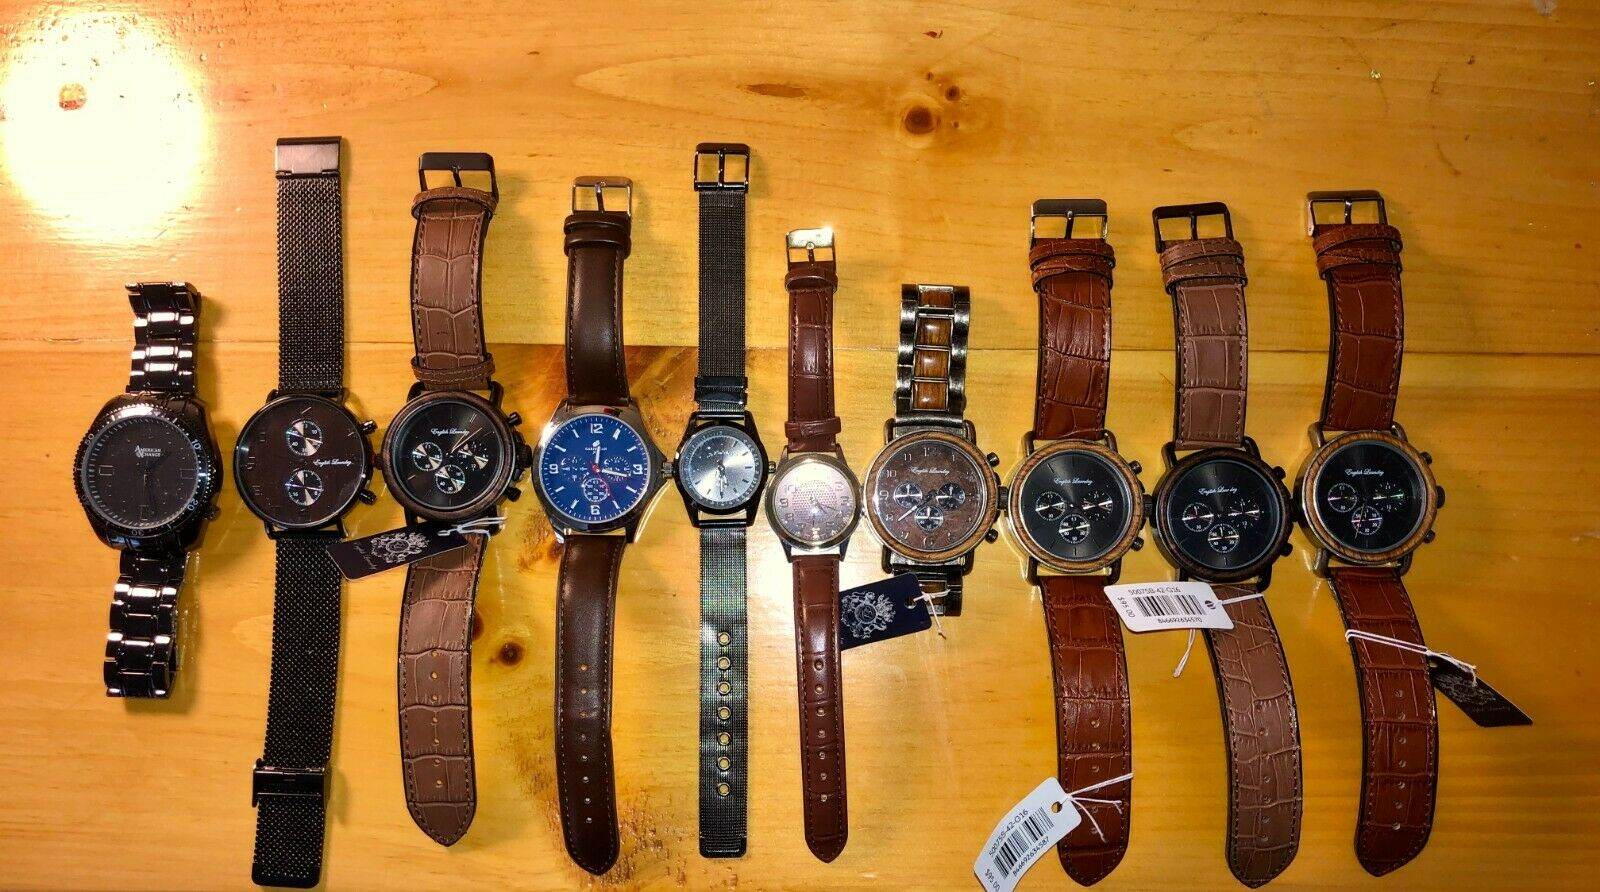 Lot of 10 New Mens Watches, U.S. Polo Assn, English Laundry, Great Resale Value